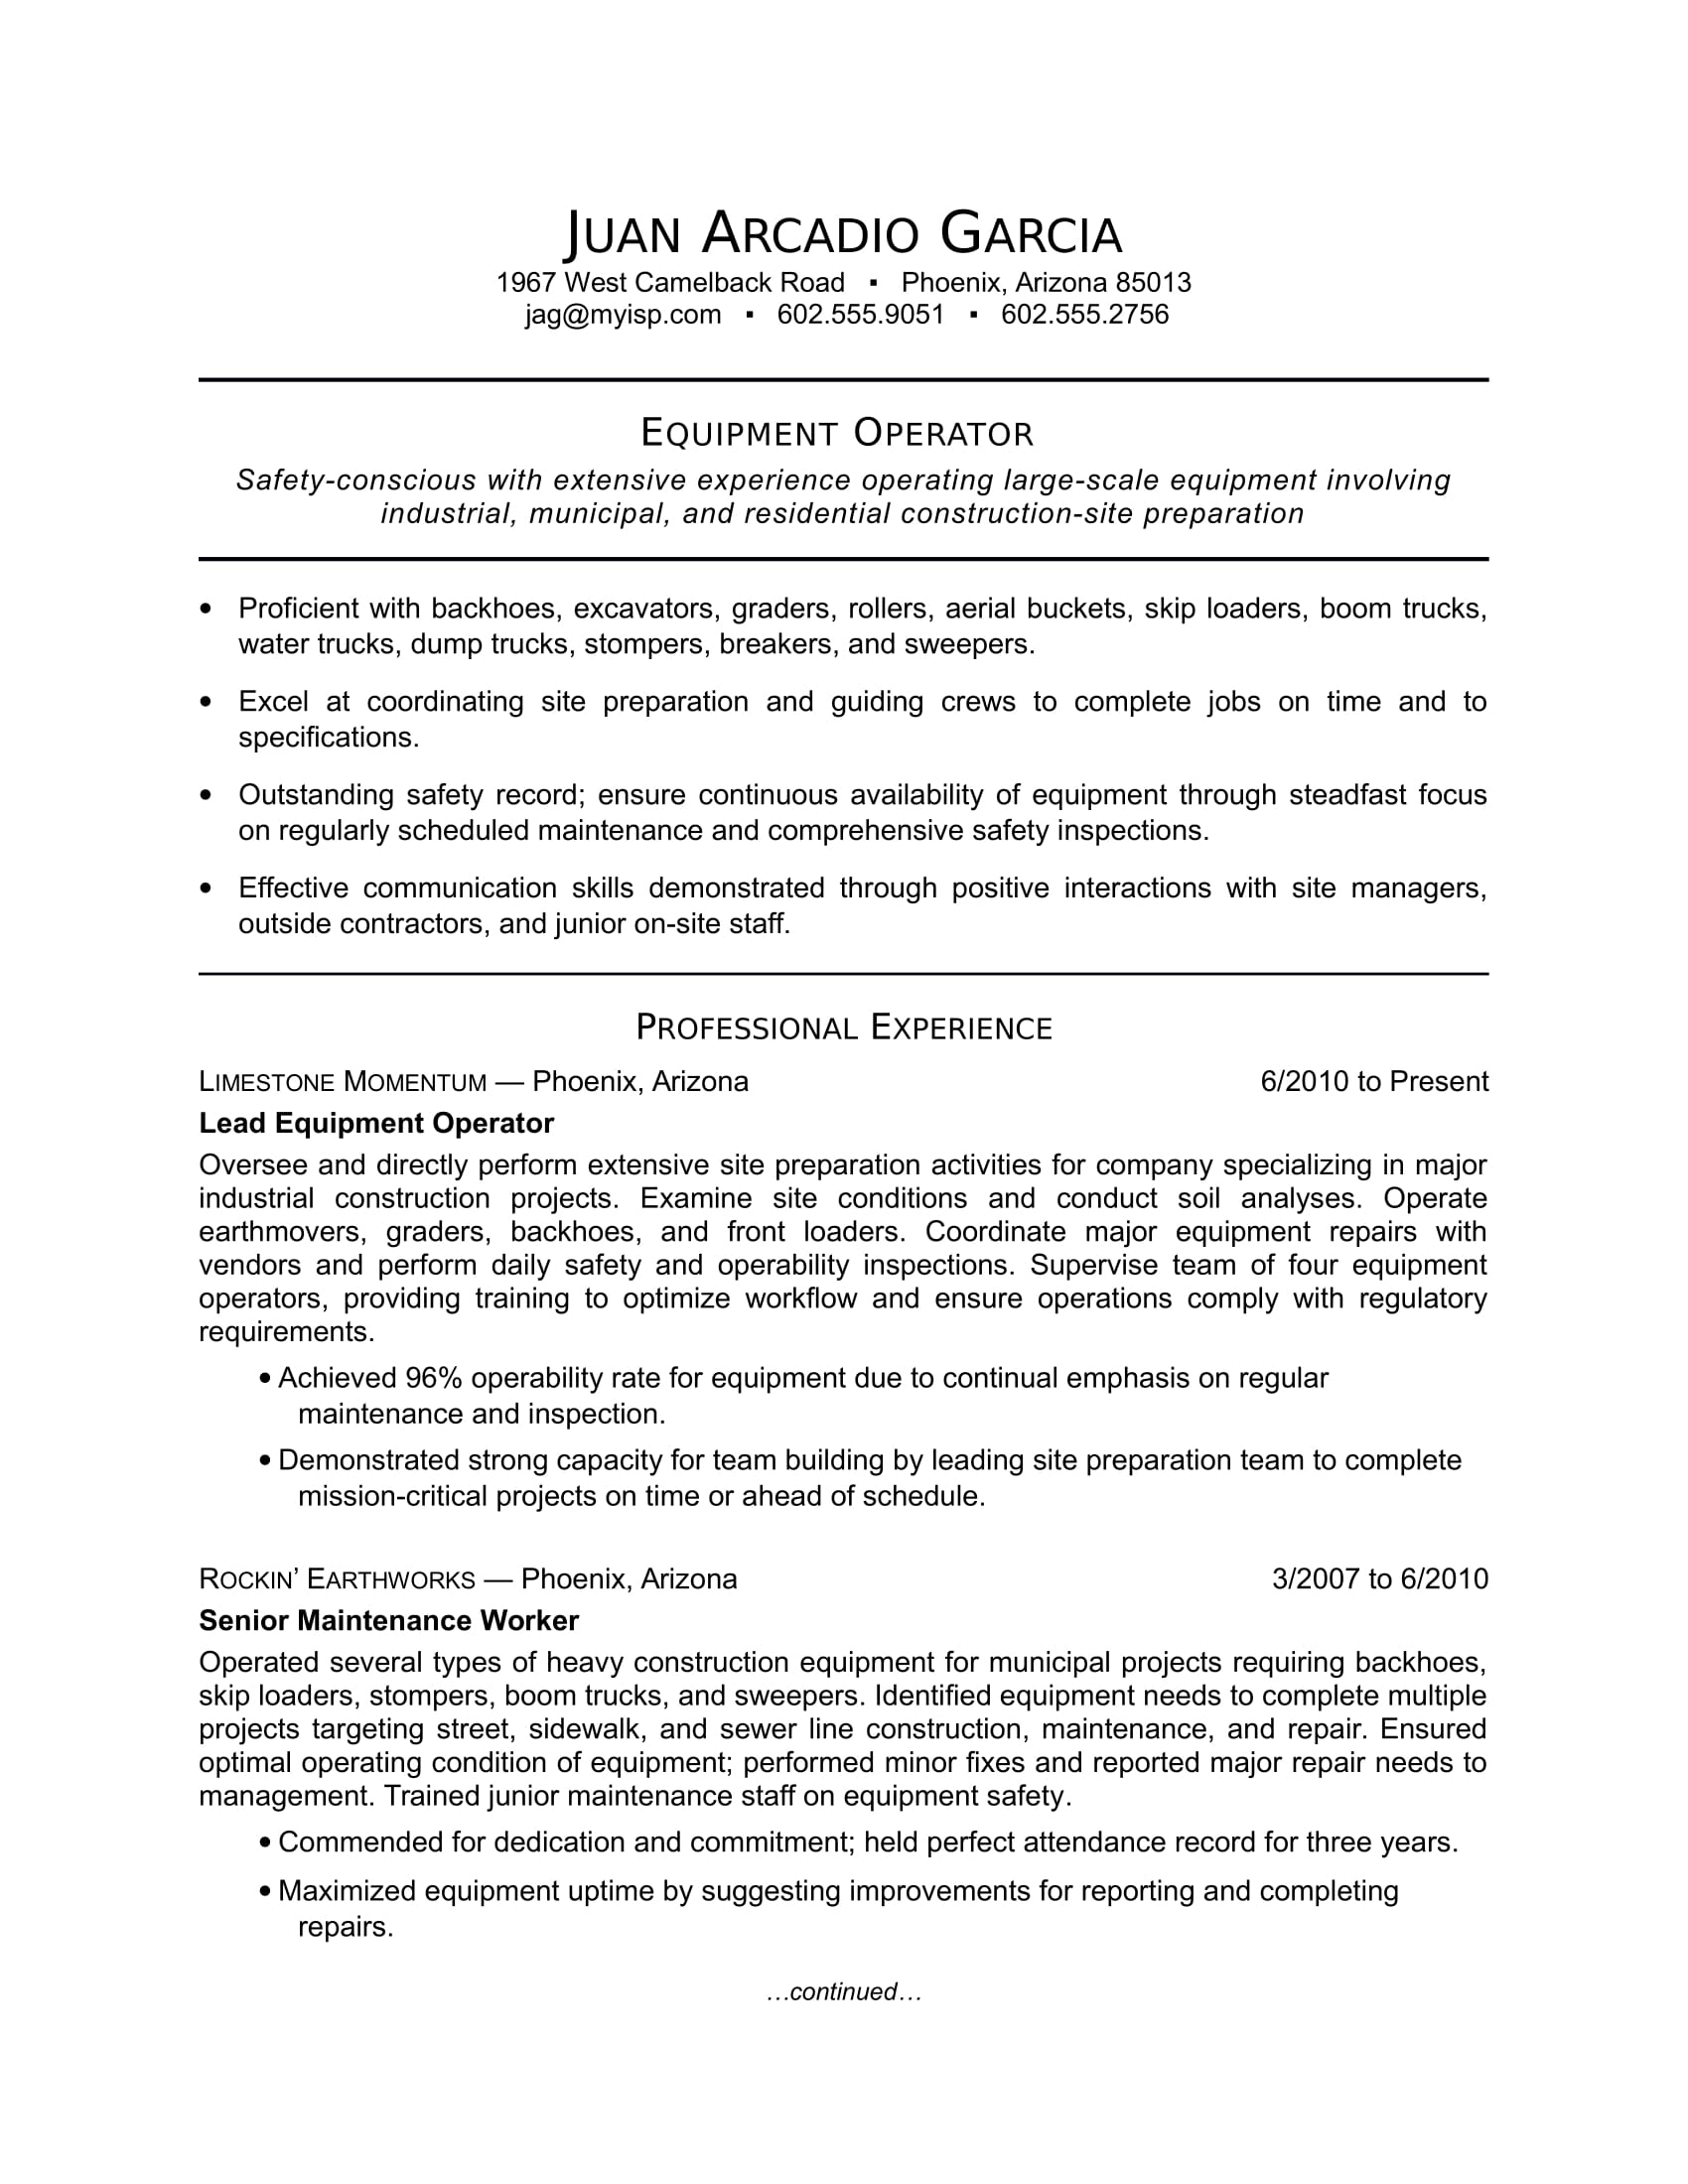 Equipment Operator Resume Sample | Monster.com